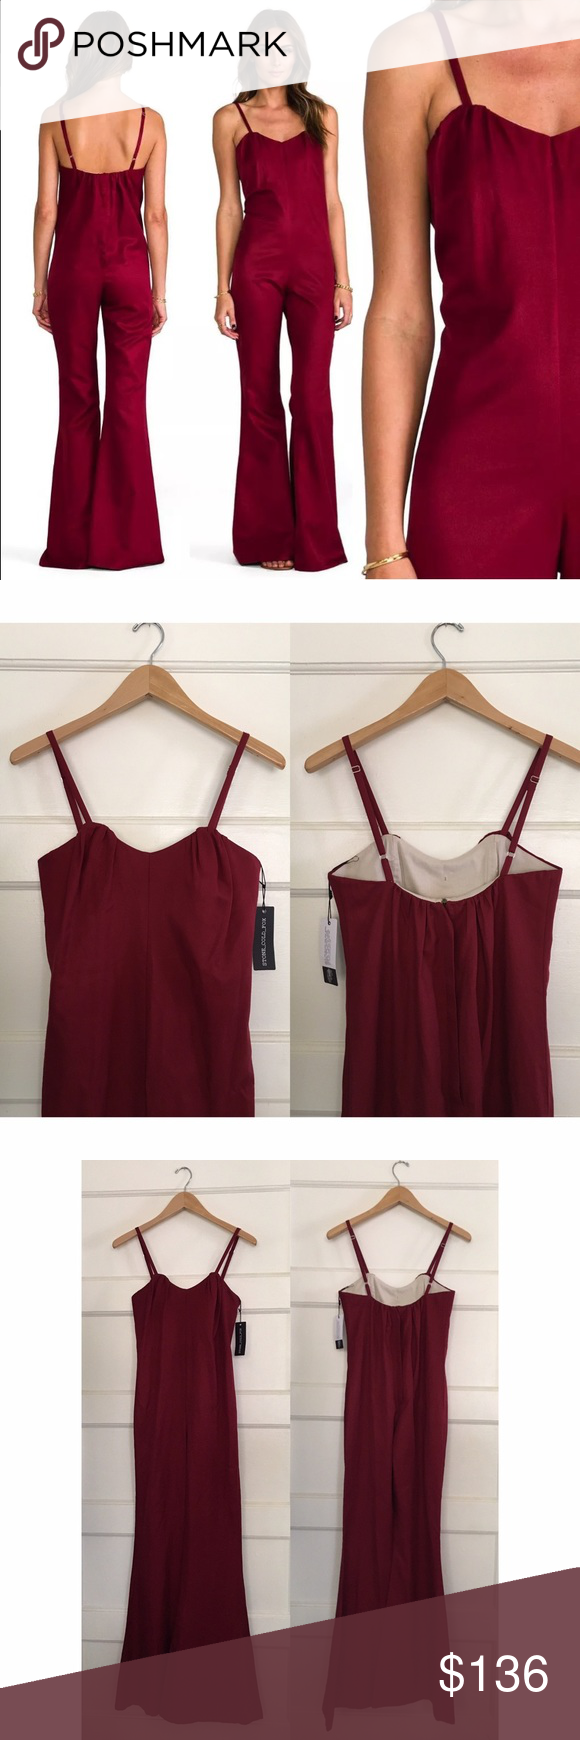 "Stone Cold Fox Jerry Jumper Stone Cold Fox Jerry Jumpsuit in Burgundy Gathered sweetheart neckline Adjustable straps Boned inner bra/bodice with zip  Size: 1 Measurements (taken flat & unstretched) Bust: 14.5"" Waist: 15.5"" Hip: 18"" Overall Length (minus strap): 54"" Inseam: 33.5""  Excellent NWT condition. Stone Cold Fox Pants Jumpsuits & Rompers"